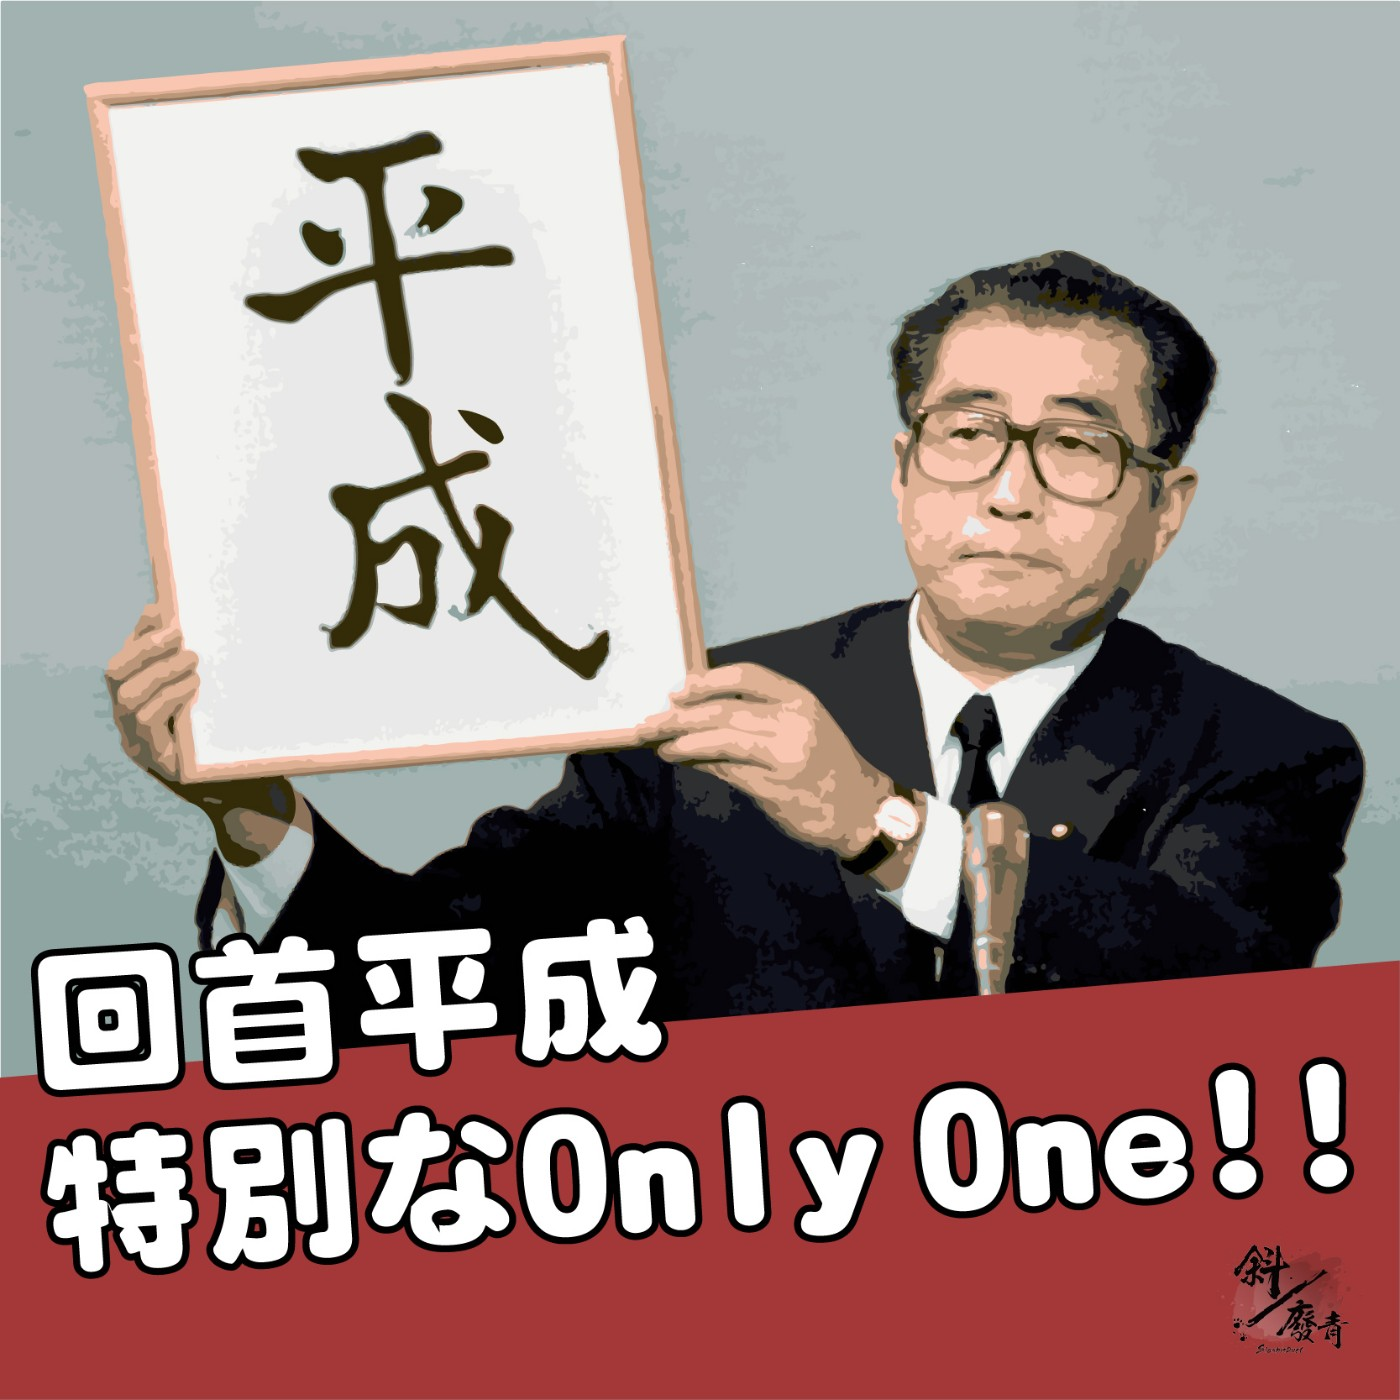 S3E05 斜躺說書 回首平成、特別なOnly One!!:葉真中顯《Blue》